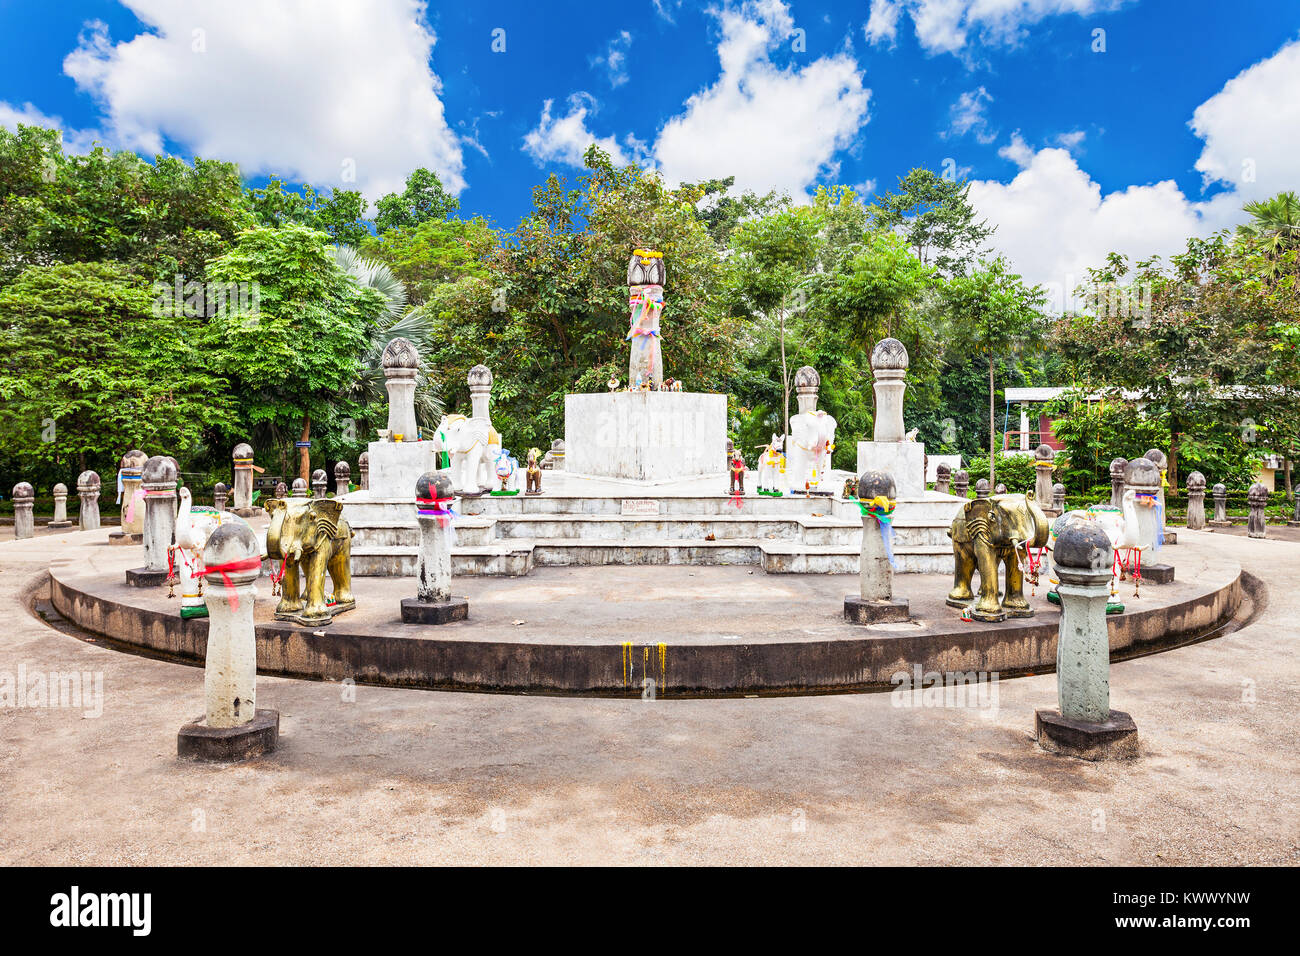 Sadu Mueang at Doi Chom Thong, Chiang Rai, northern Thailand - Stock Image